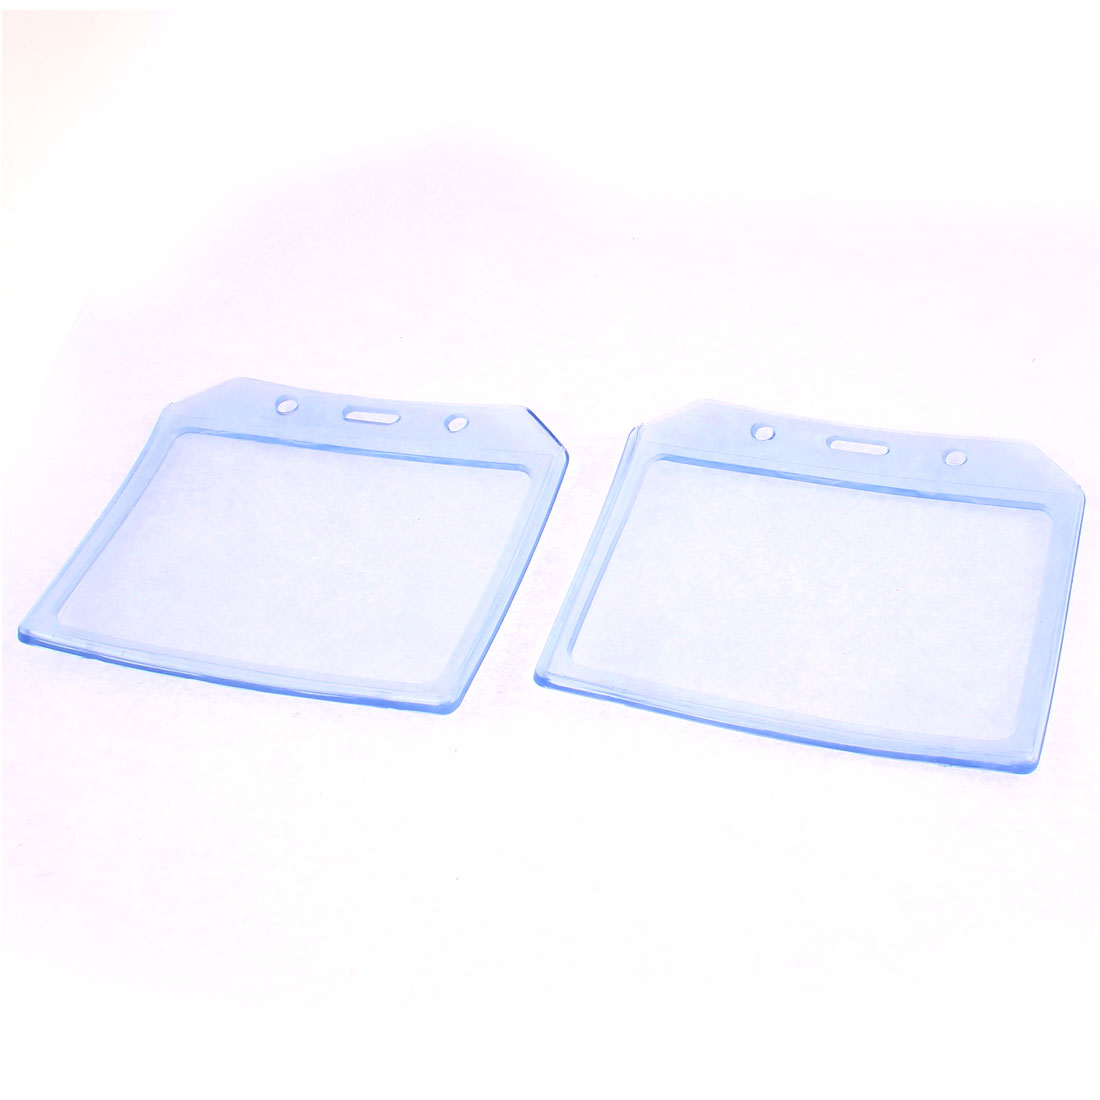 Clear Plastic A7 Badge Exhibition ID Card Holder Case 2pcs